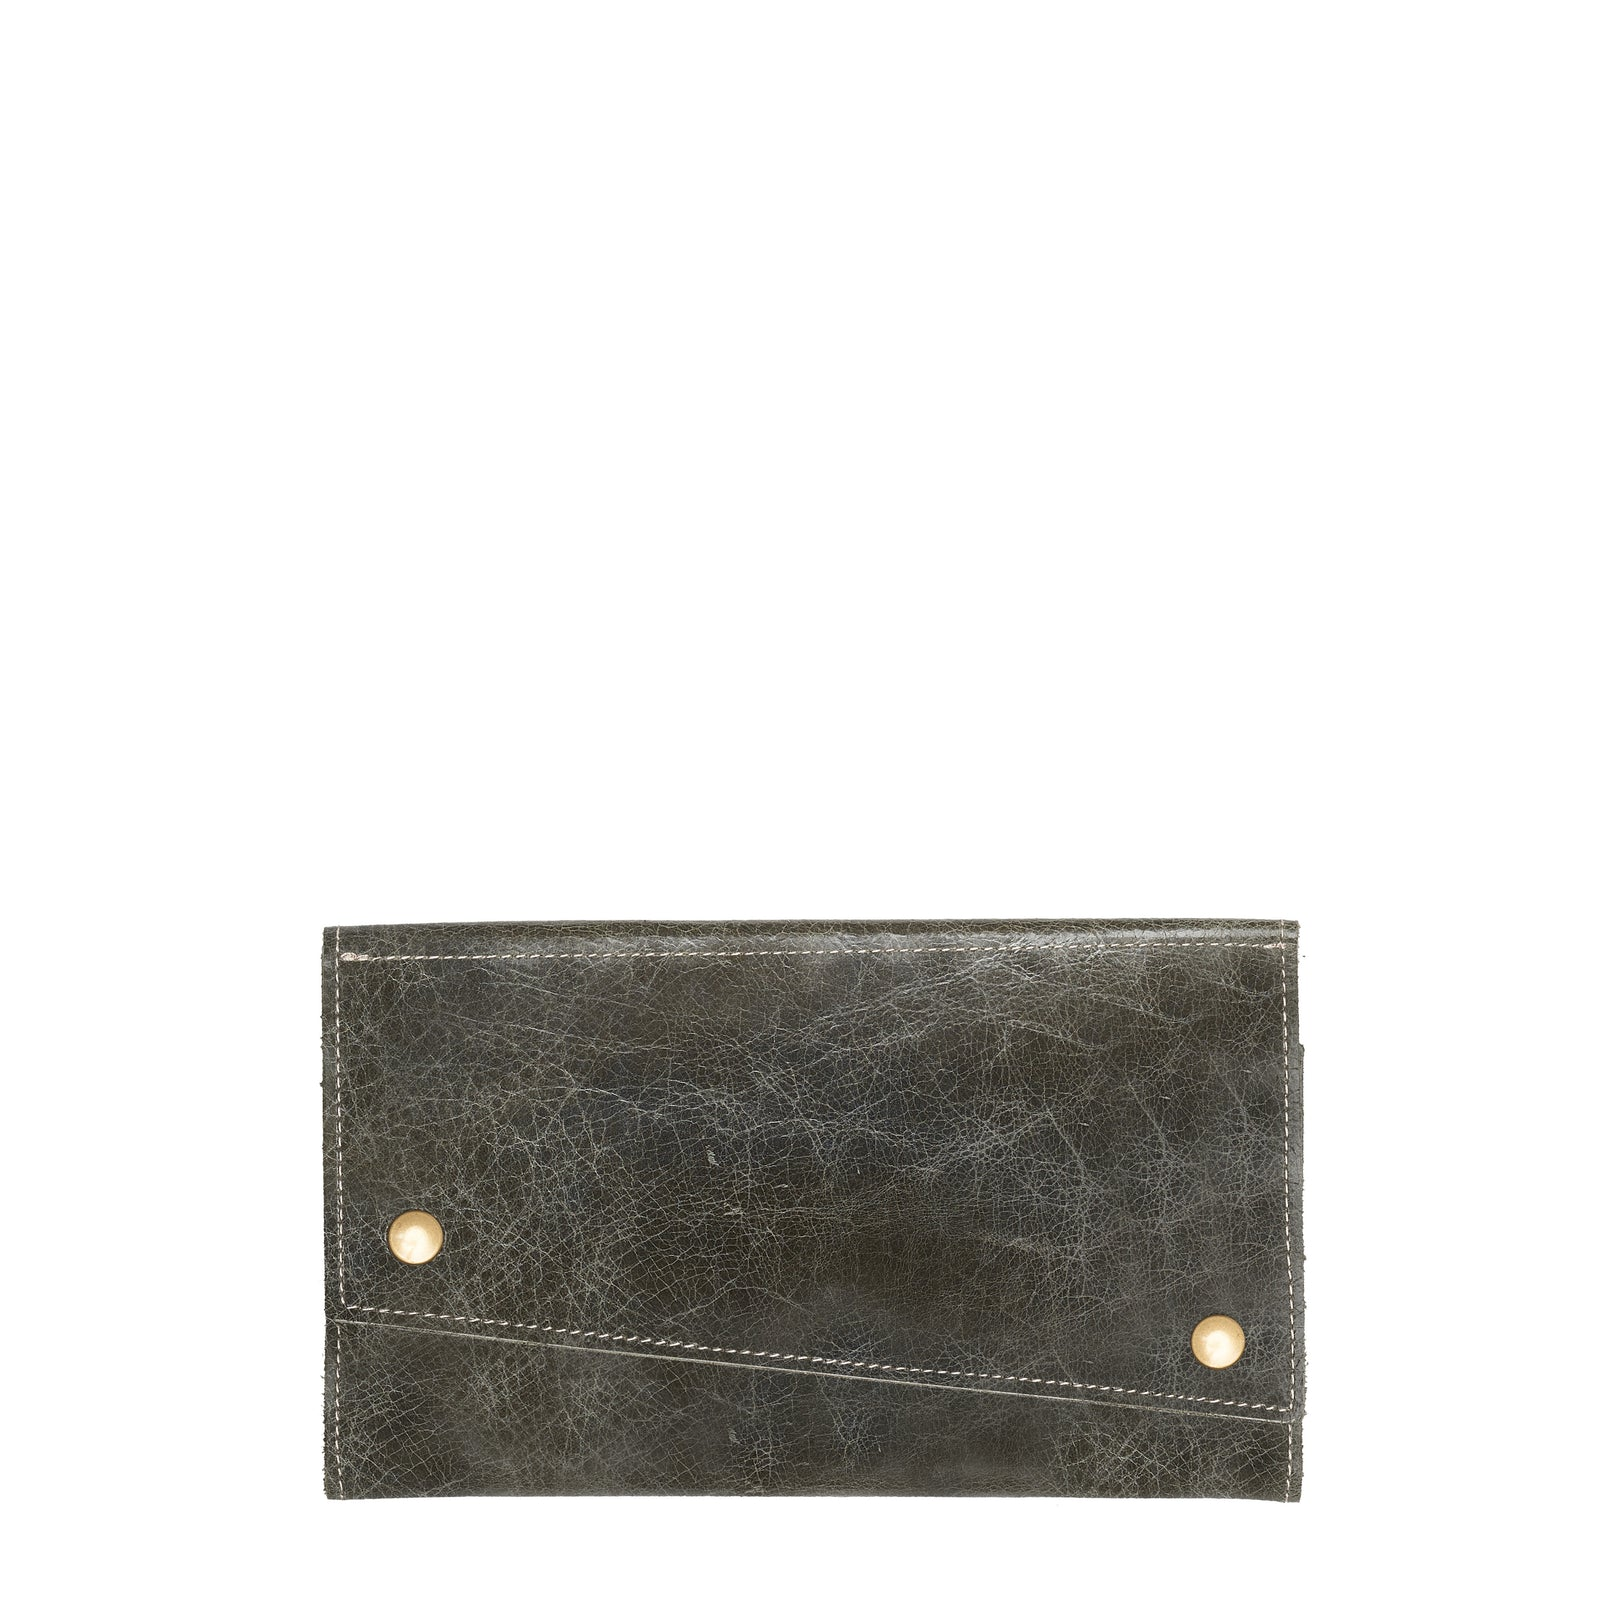 Kimerly Tri-fold Wallet - River Rock - Brynn Capella, Tri-fold Wallet